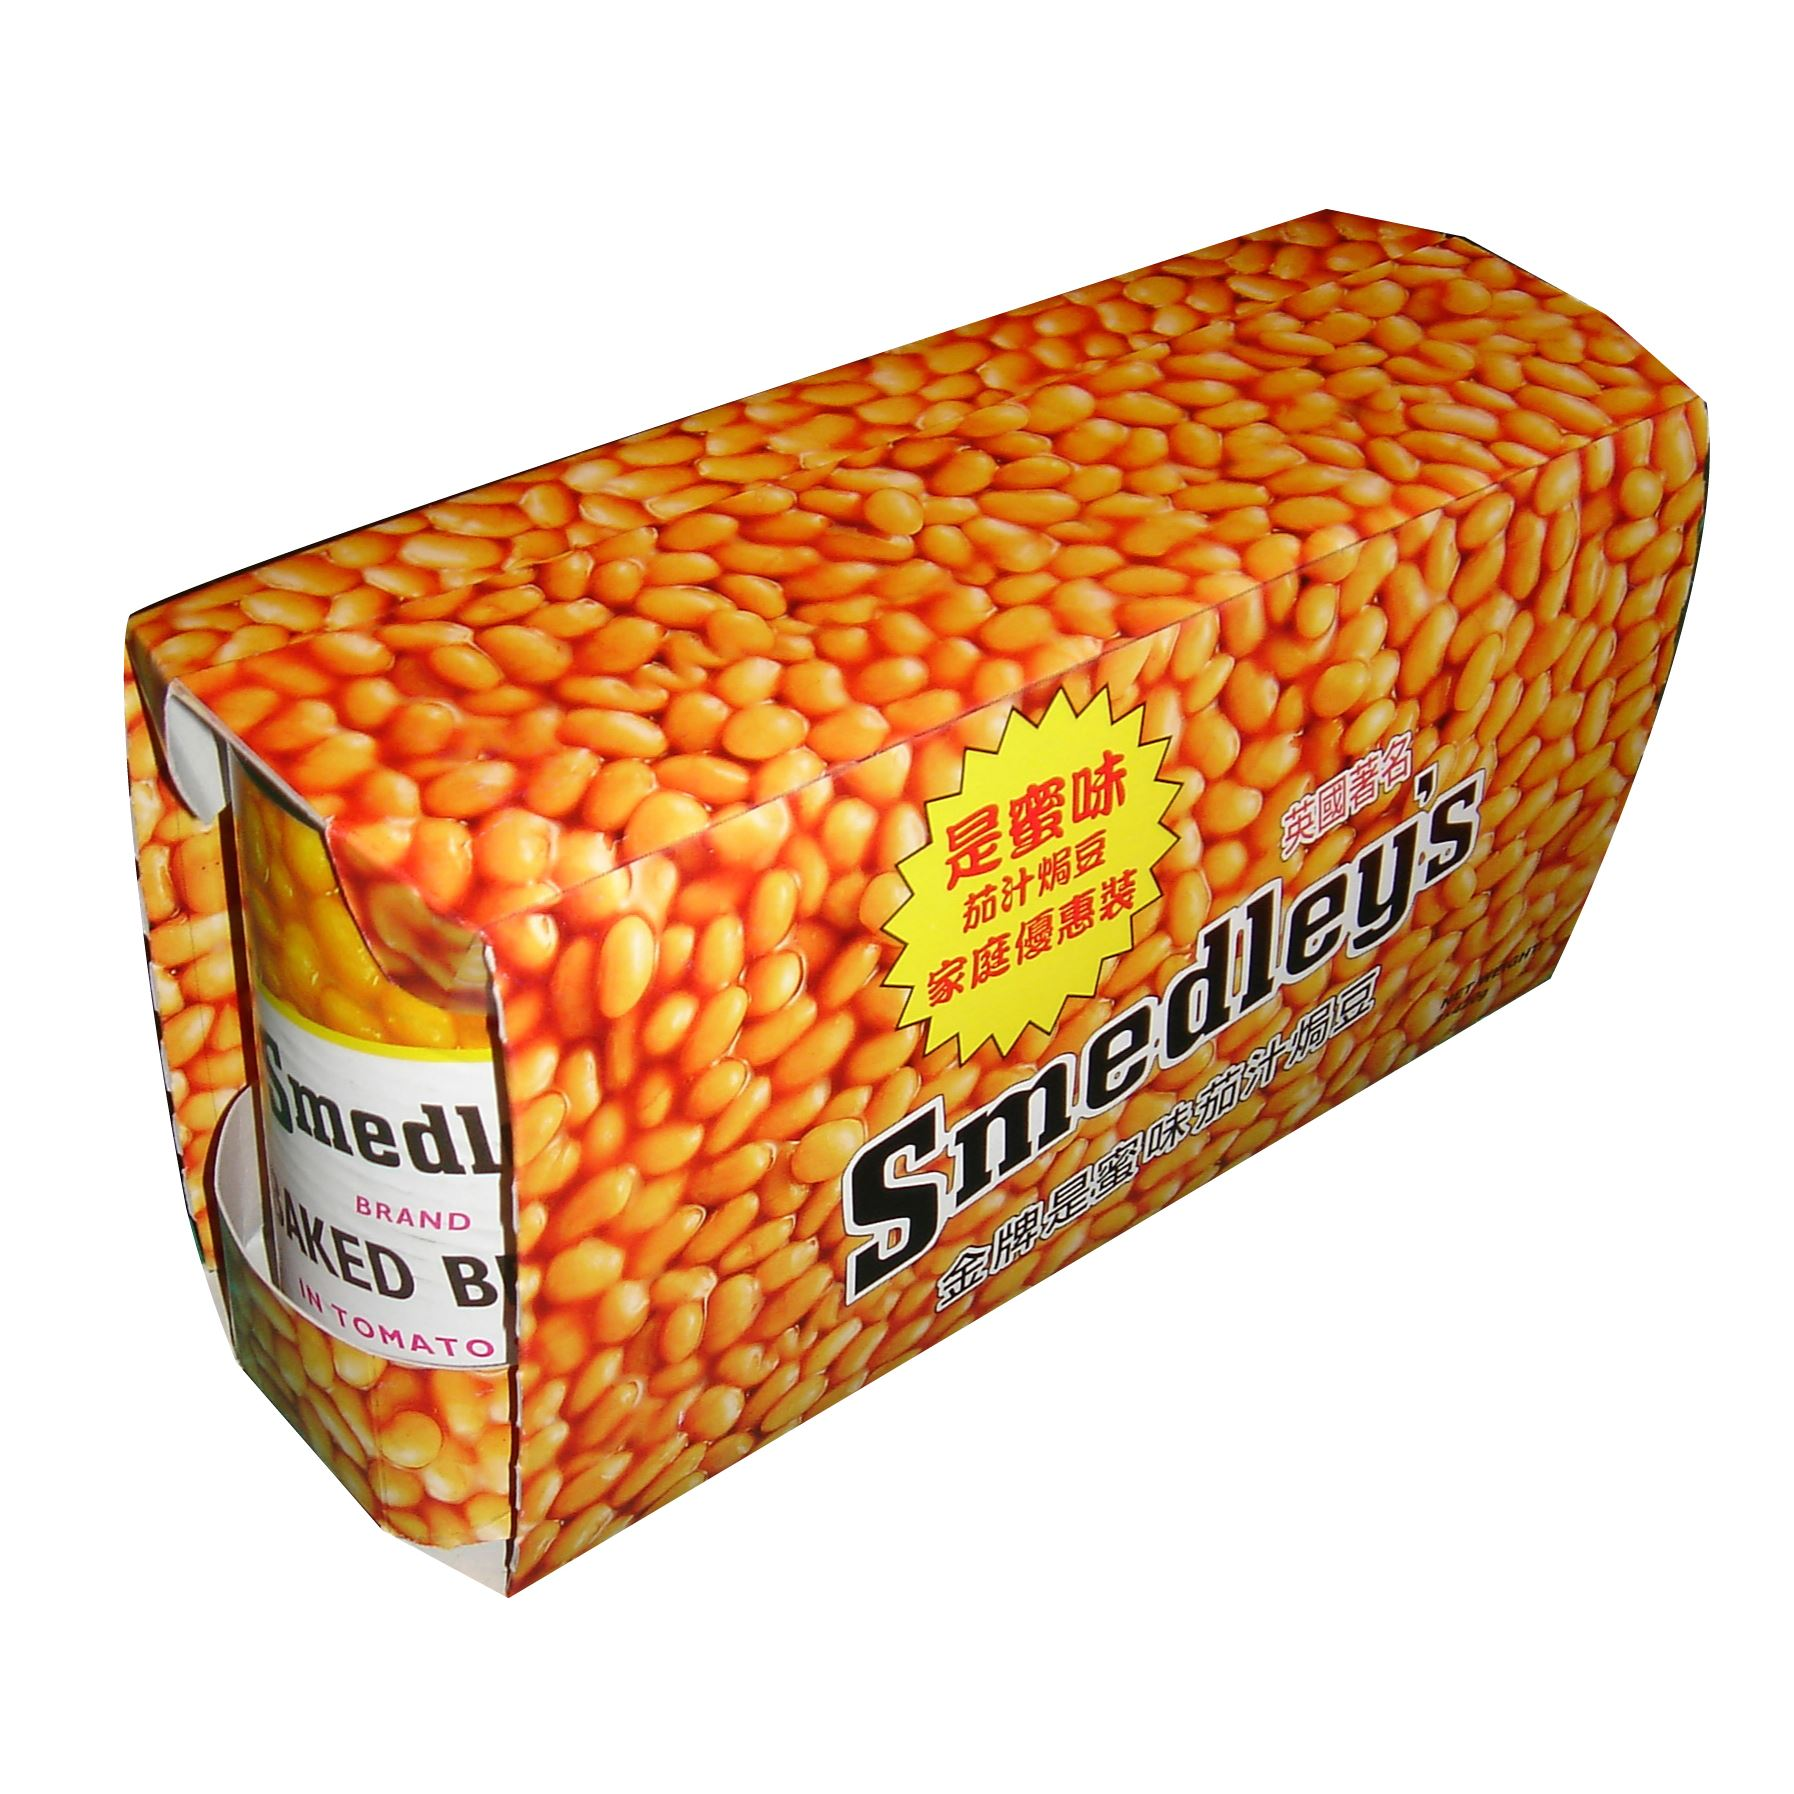 SMEDLEYS BAKED BEANS FAMILY PACK 3 X 420G